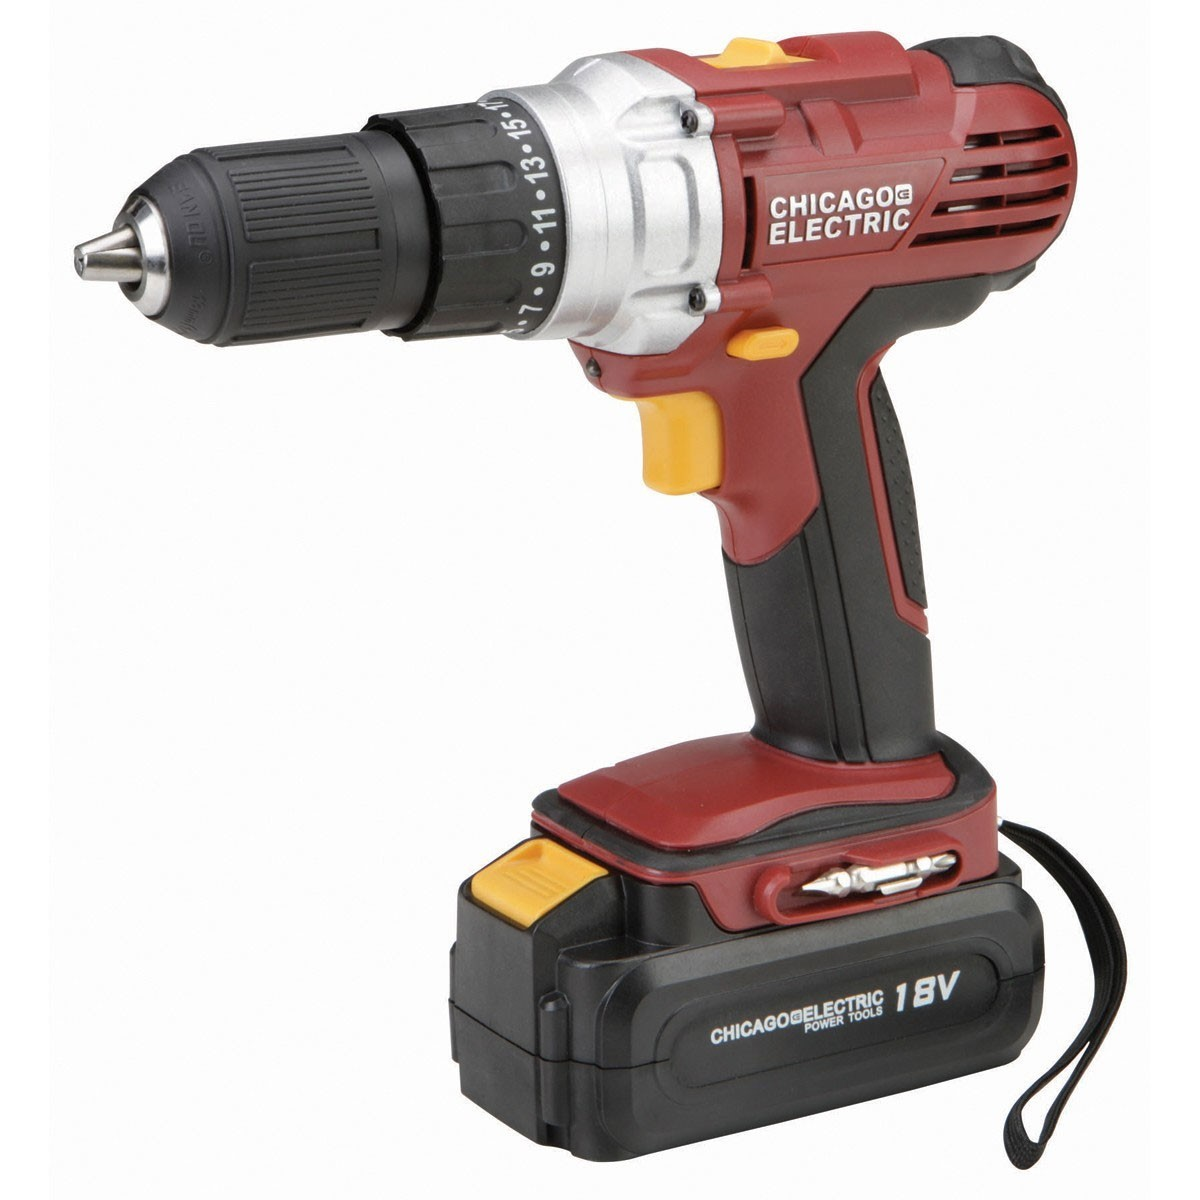 CHICAGO ELECTRIC Cordless Drill 62427